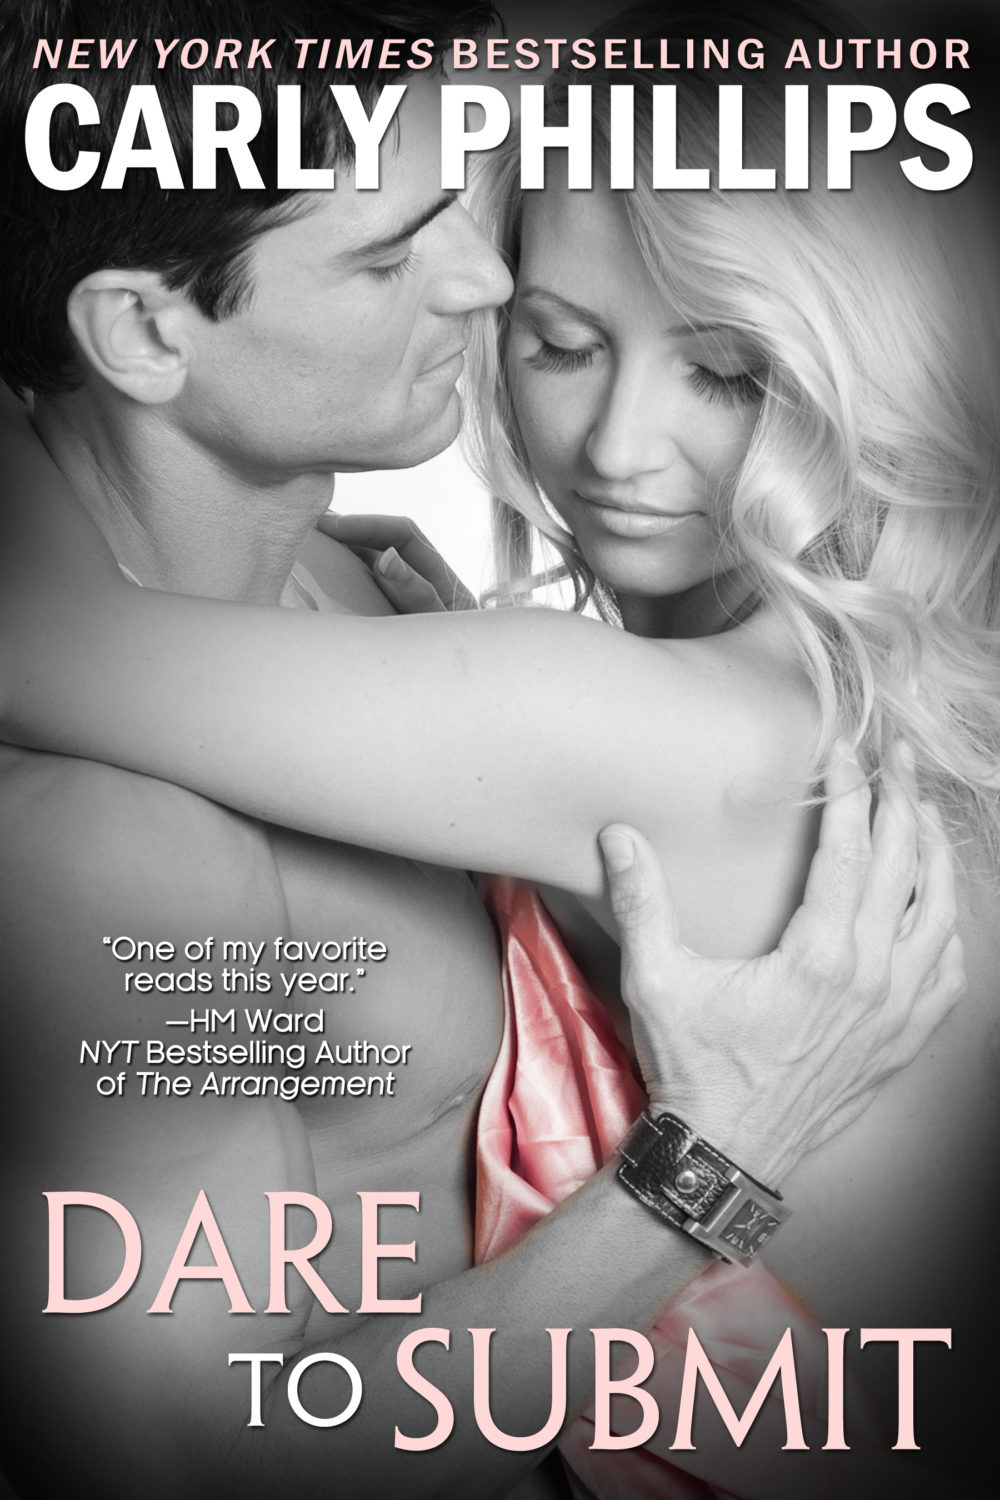 DARE TO SUBMIT Blog Hop